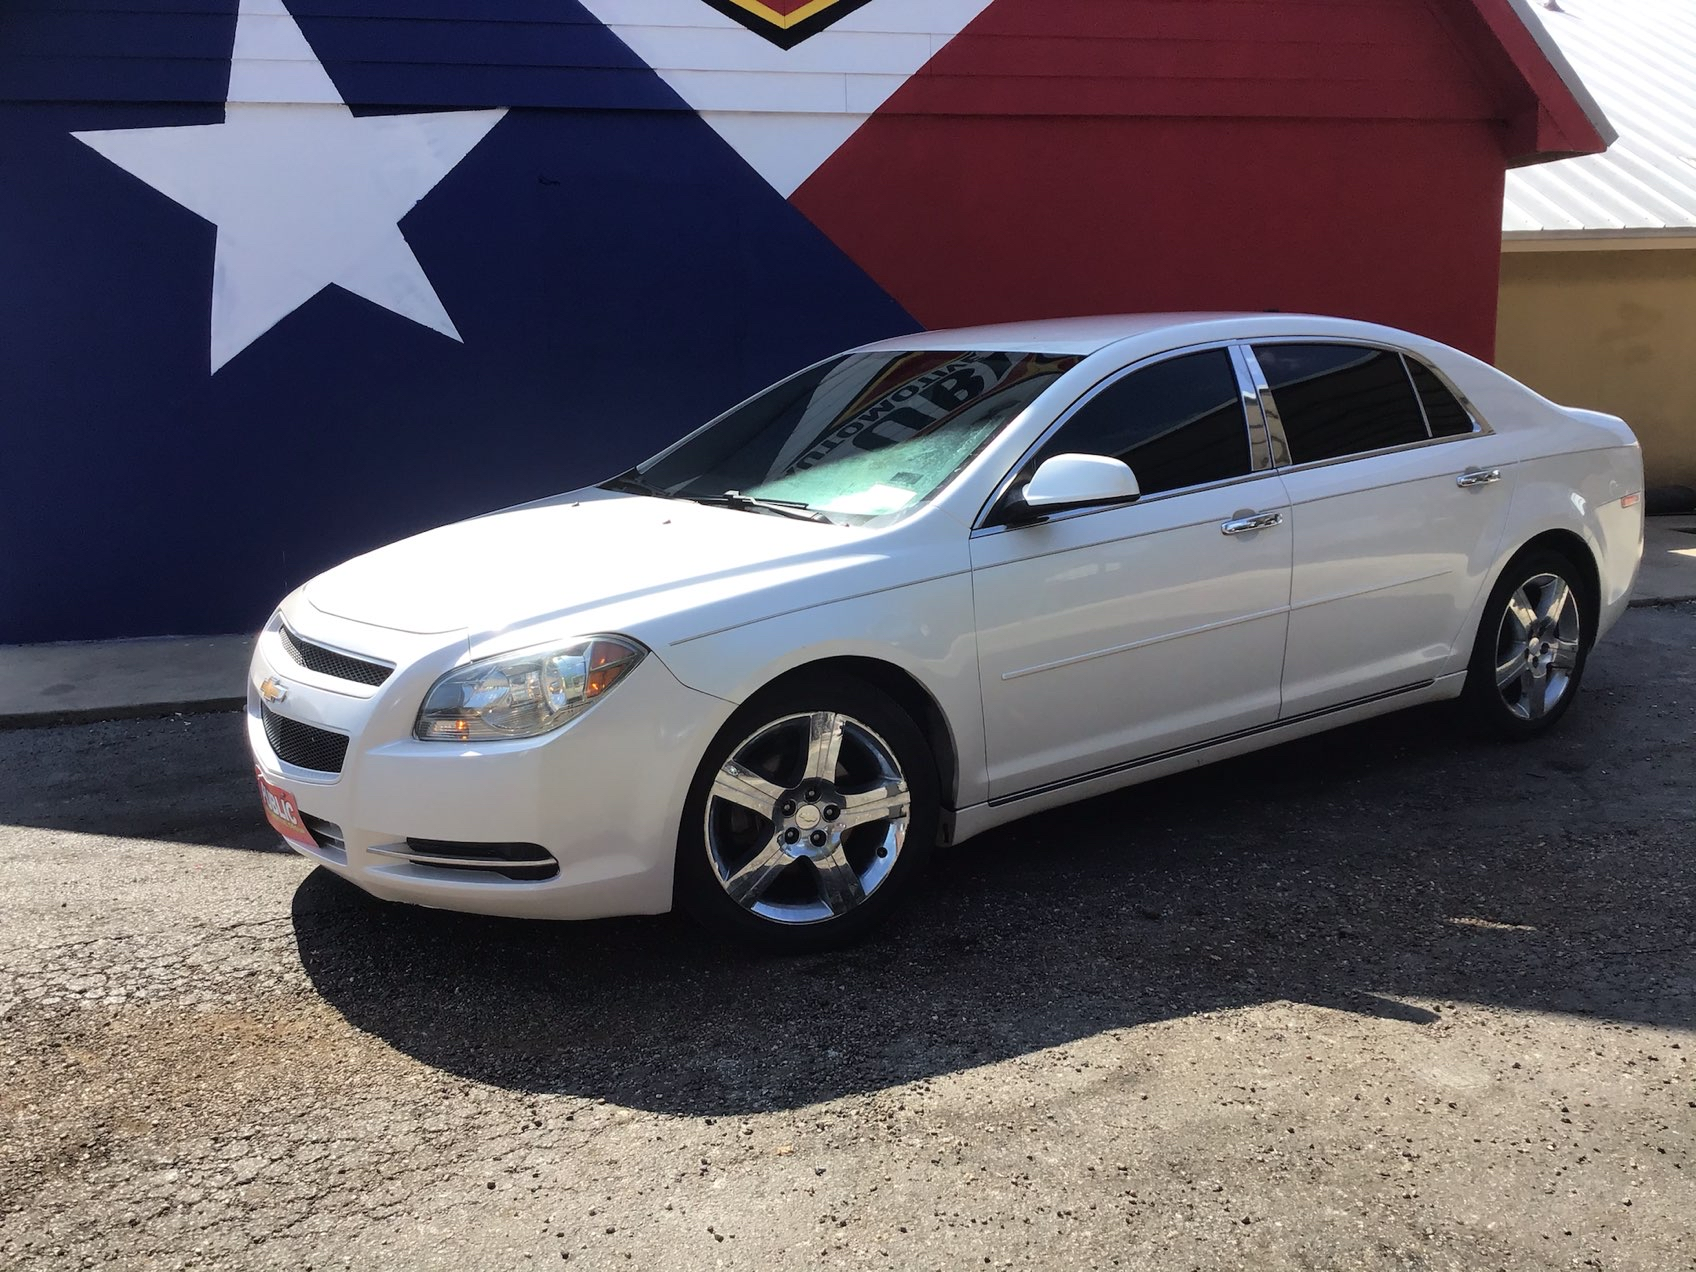 used vehicle - 4 DOOR SEDAN CHEVROLET MALIBU 2012